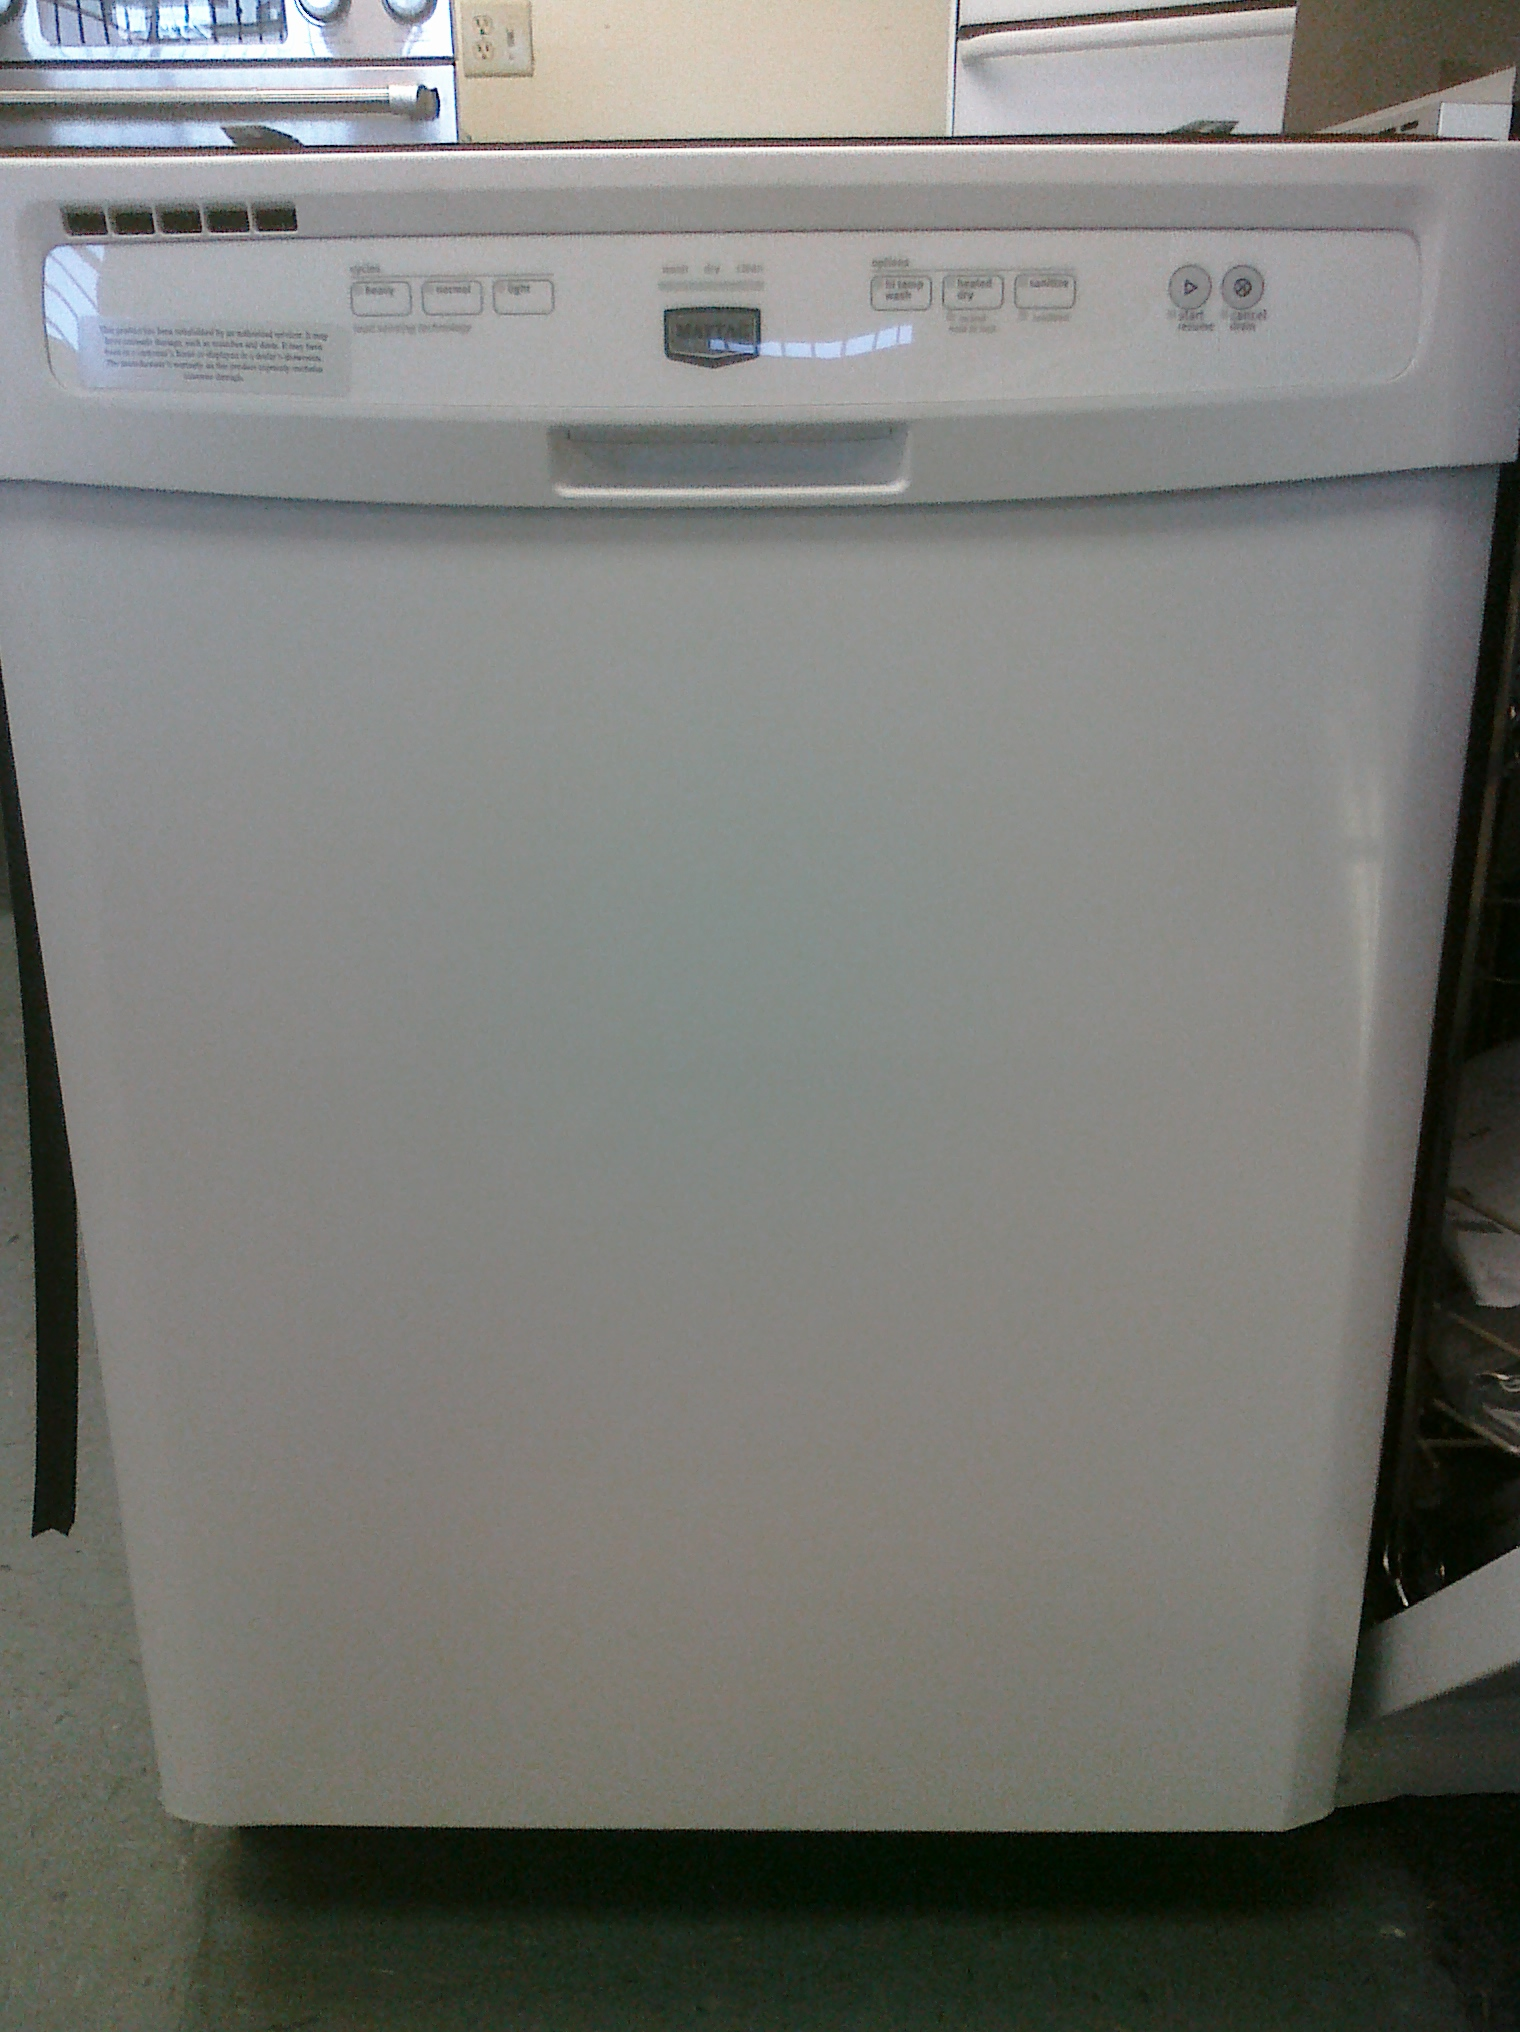 (9) Maytag MDBH979AWW Built-In Tall-Tub Dishwasher, White